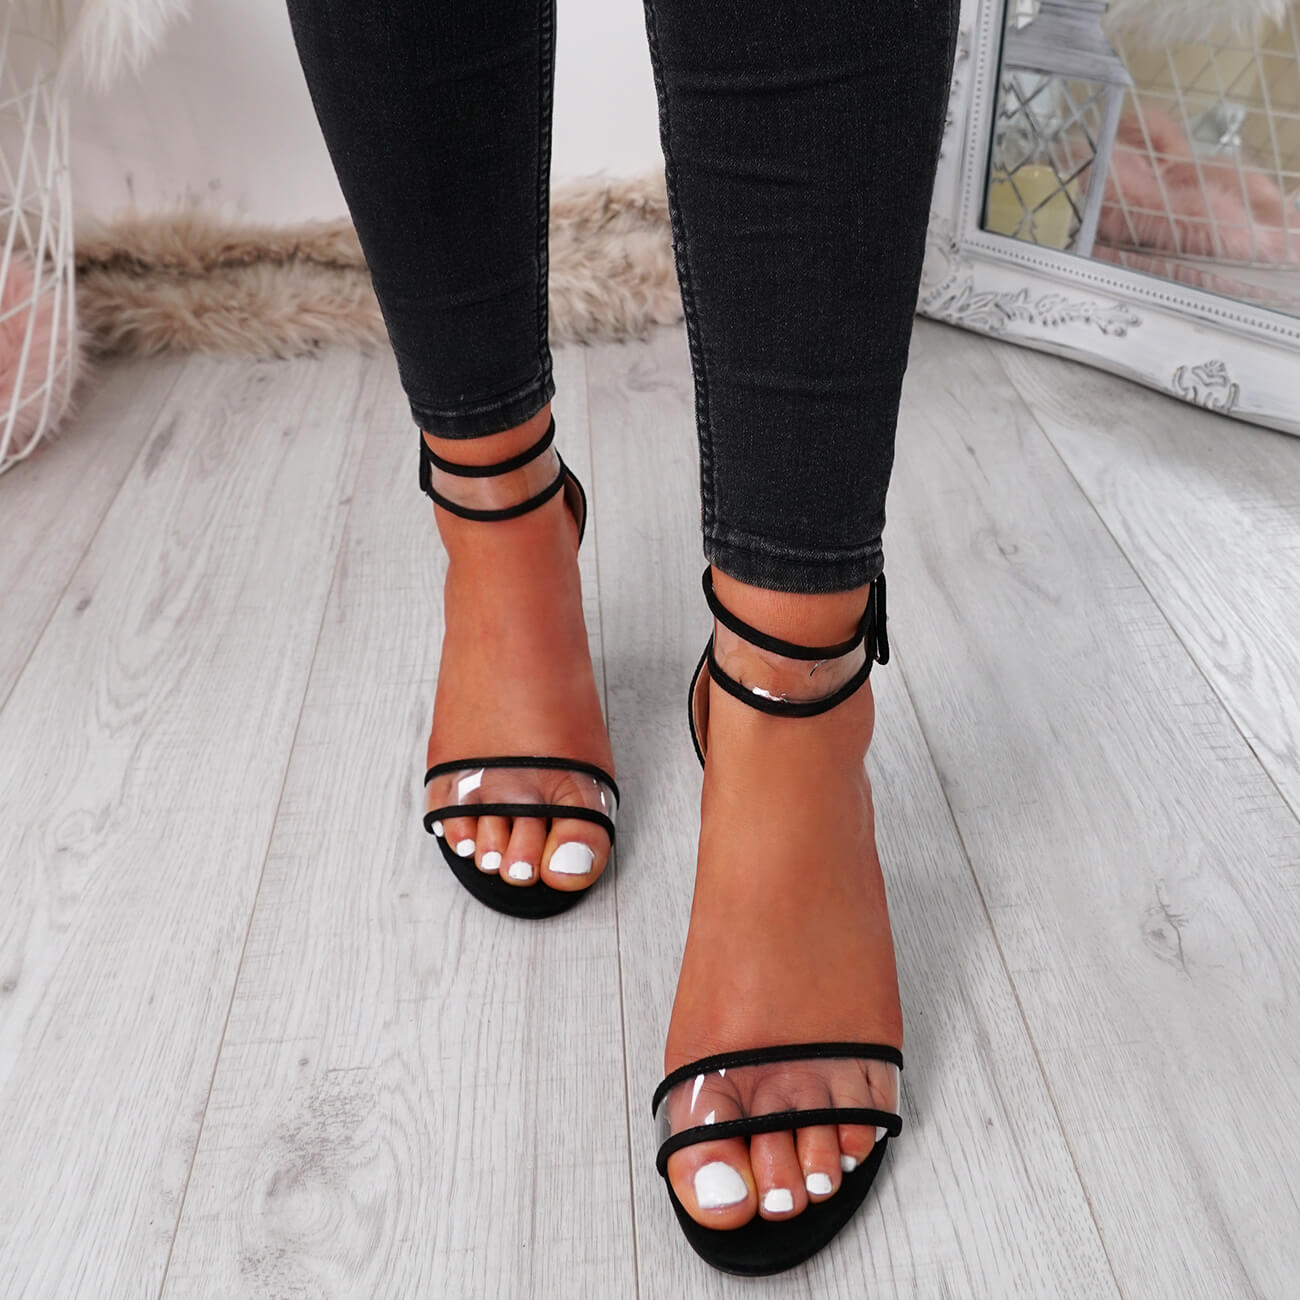 WOMENS-LADIES-ANKLE-STRAP-PEEP-TOE-HIGH-BLOCK-HEEL-SANDALS-FASHION-SHOES thumbnail 12